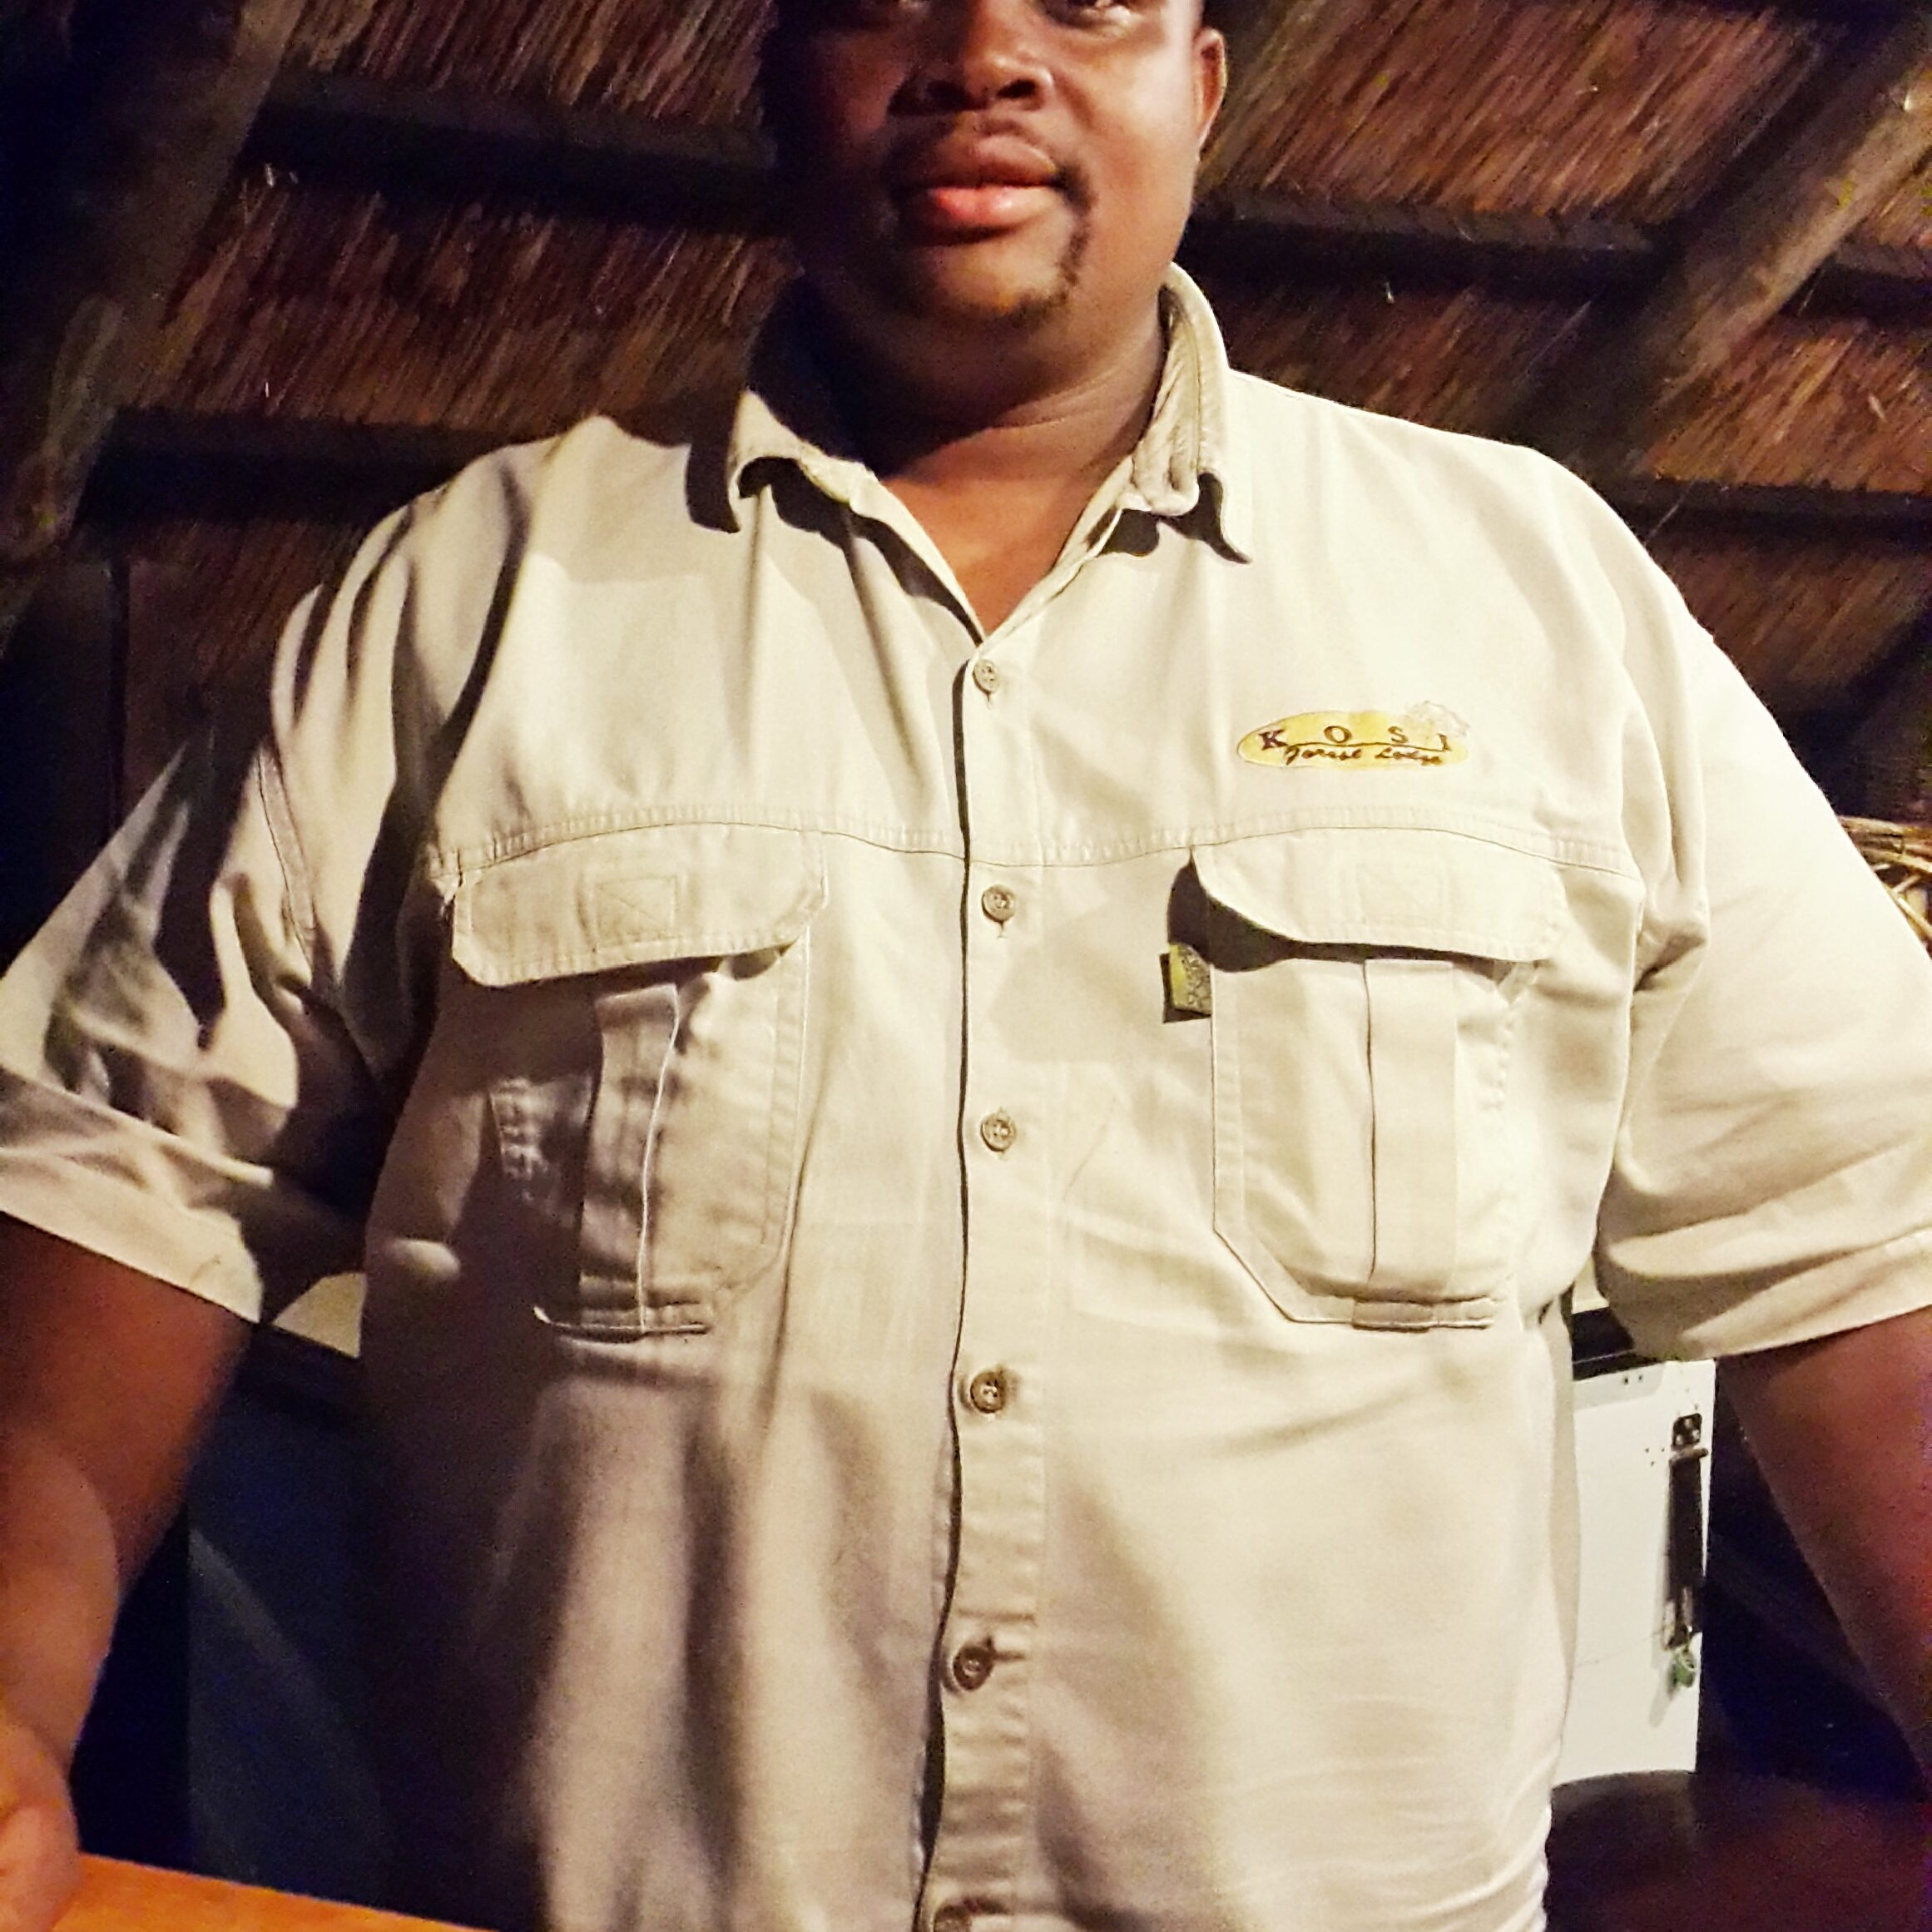 Sibusiso (Blessing) Mngomezulu, Lodge Manager of Kosi Forest Lodge